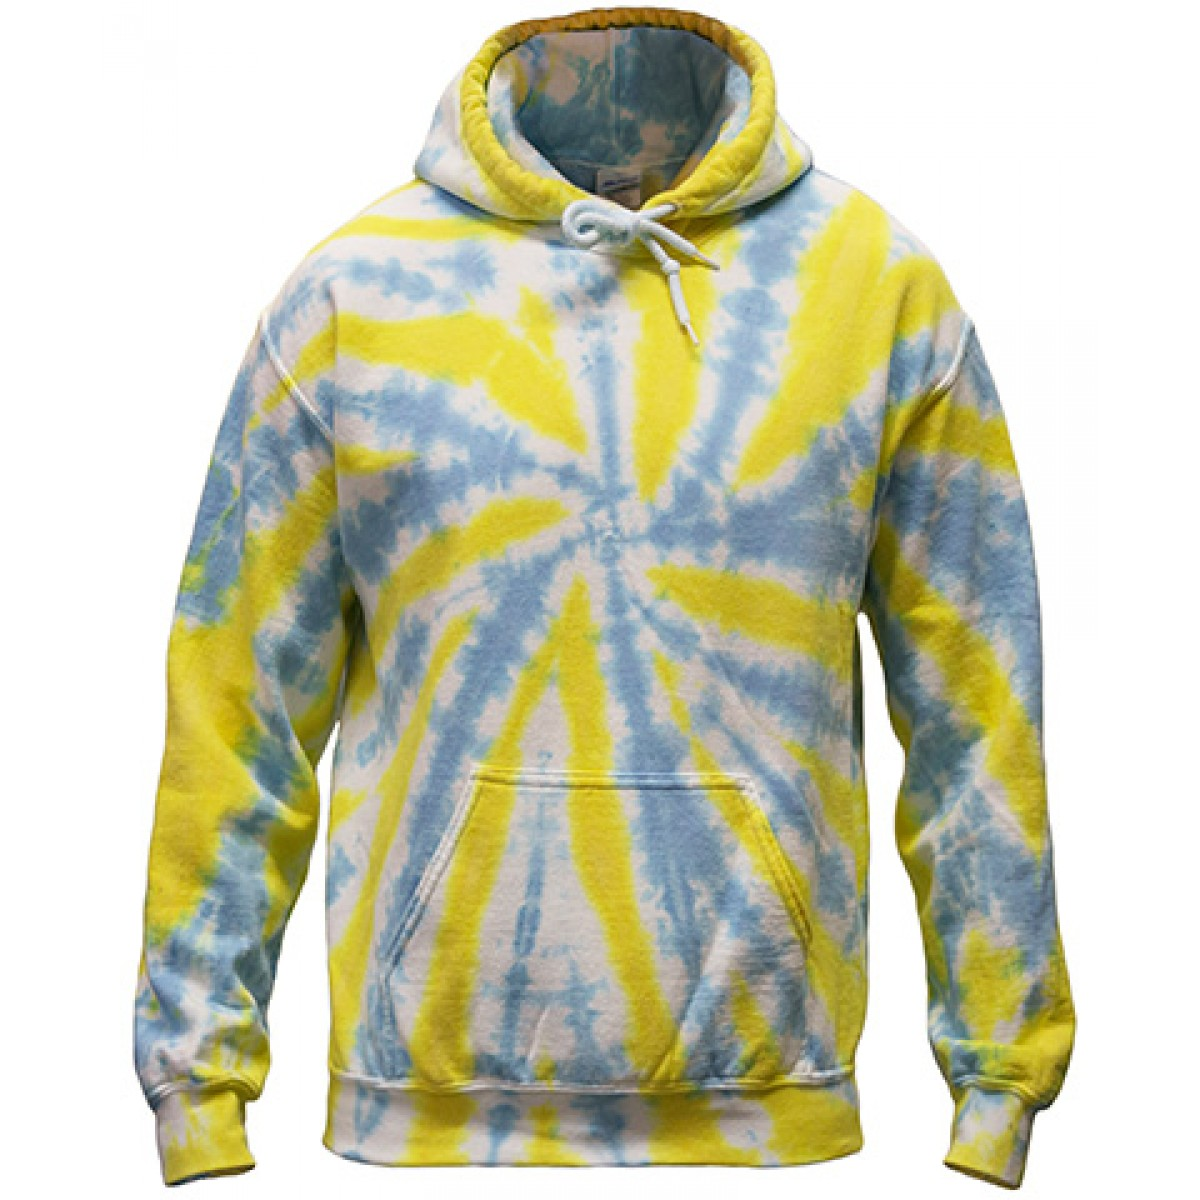 Tie-Dye Pullover Hooded Sweatshirt-Blue/Yellow-YM